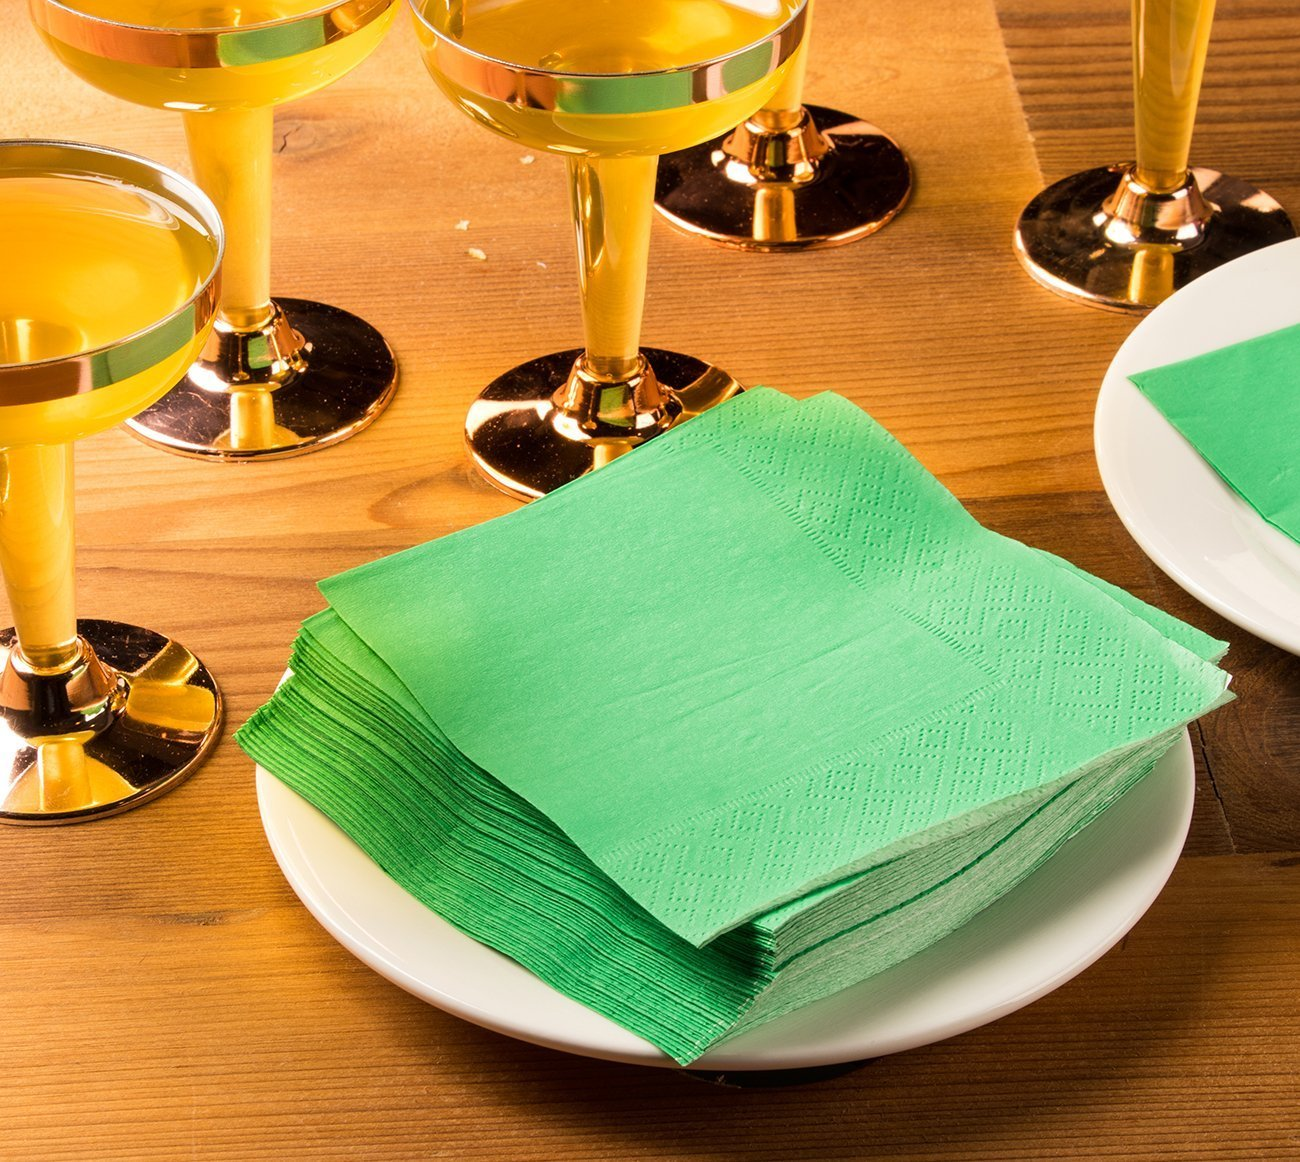 Cocktail Napkins - 200-Pack Disposable Paper Napkins, 2-Ply, Kelly Green, 5 x 5 Inches Folded by Blue Panda (Image #2)